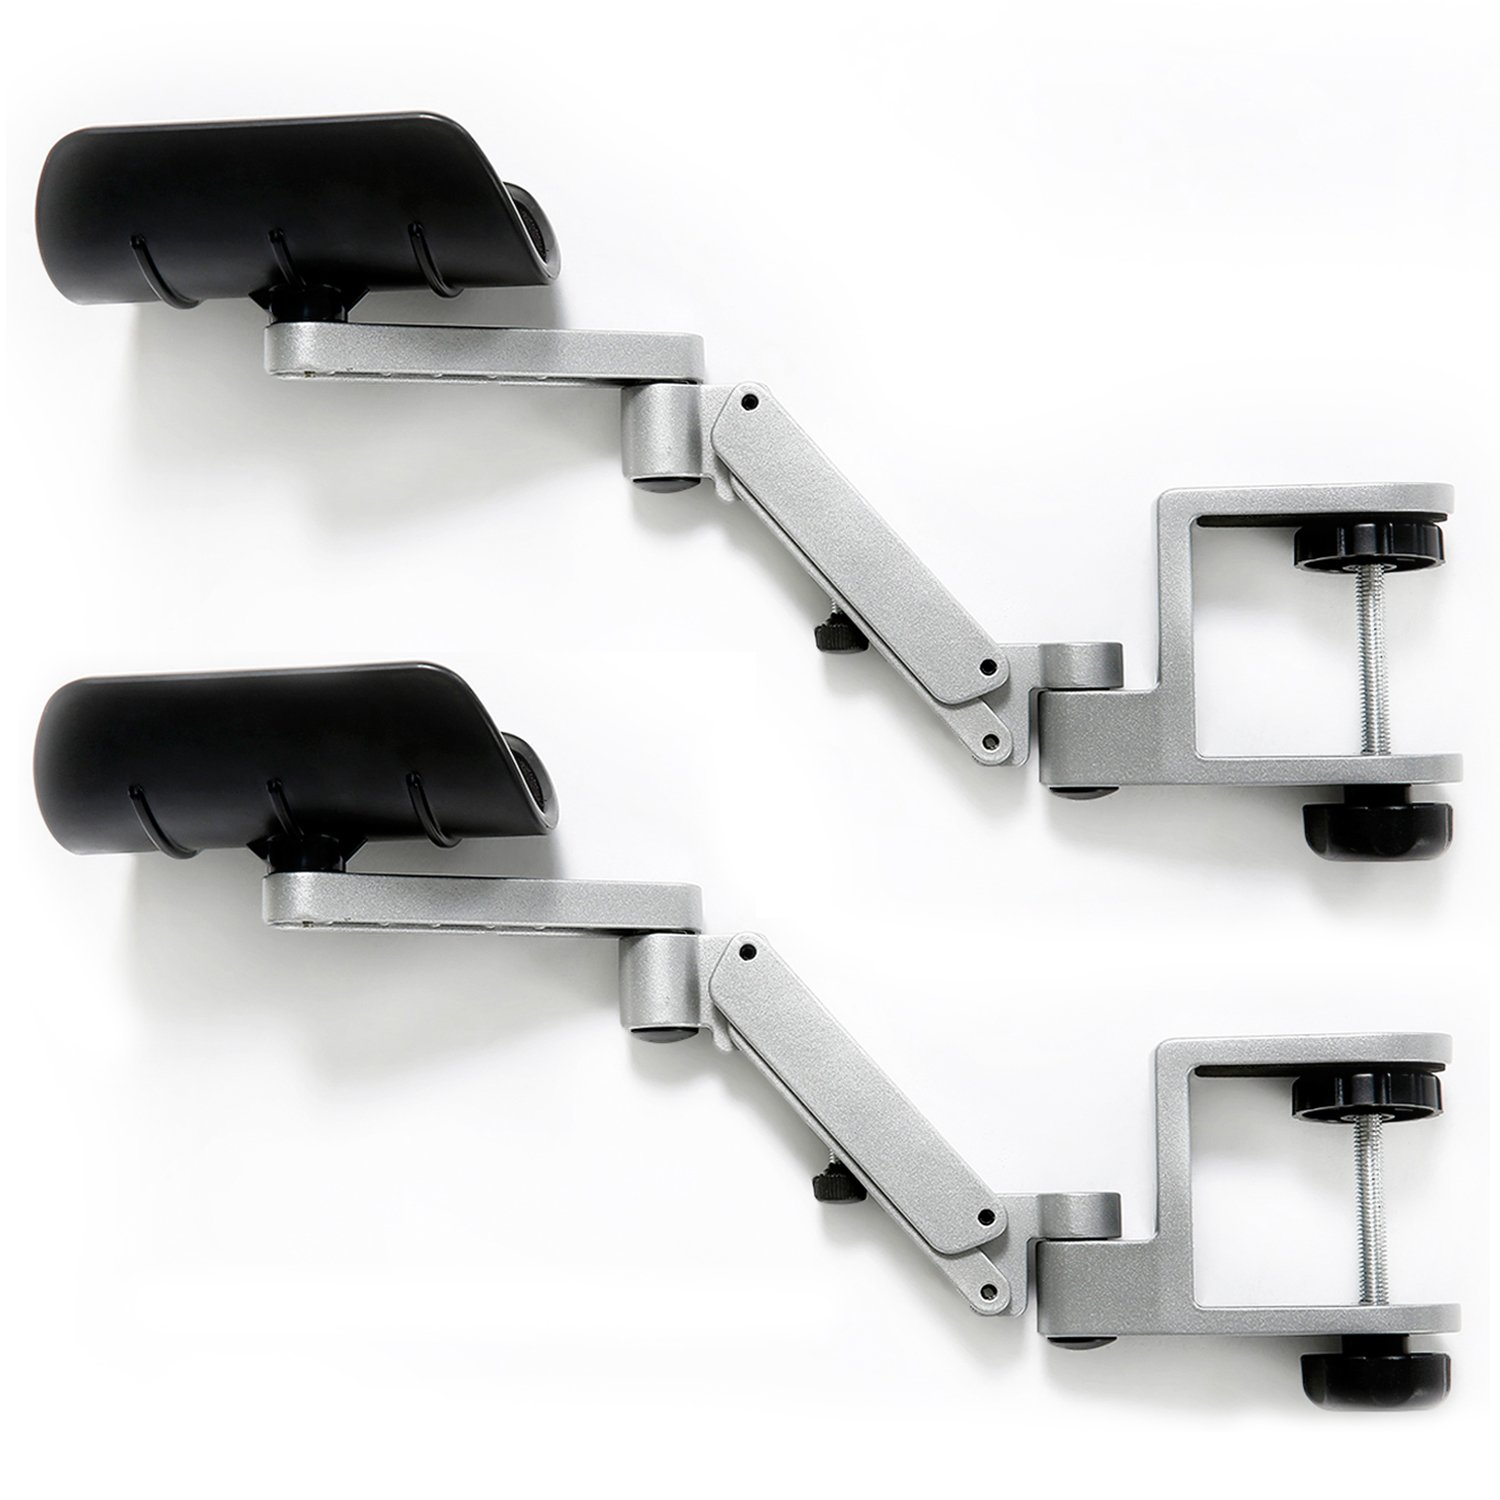 Ergonomically Designed for IT Professional Computer Monitor Working Aluminum Alloy Arm Stand Wrist Rest Rotating Desk Extension Elbow Pad Armrest Patu 2 Packs Sliver Lift Adjustable 1 Pair